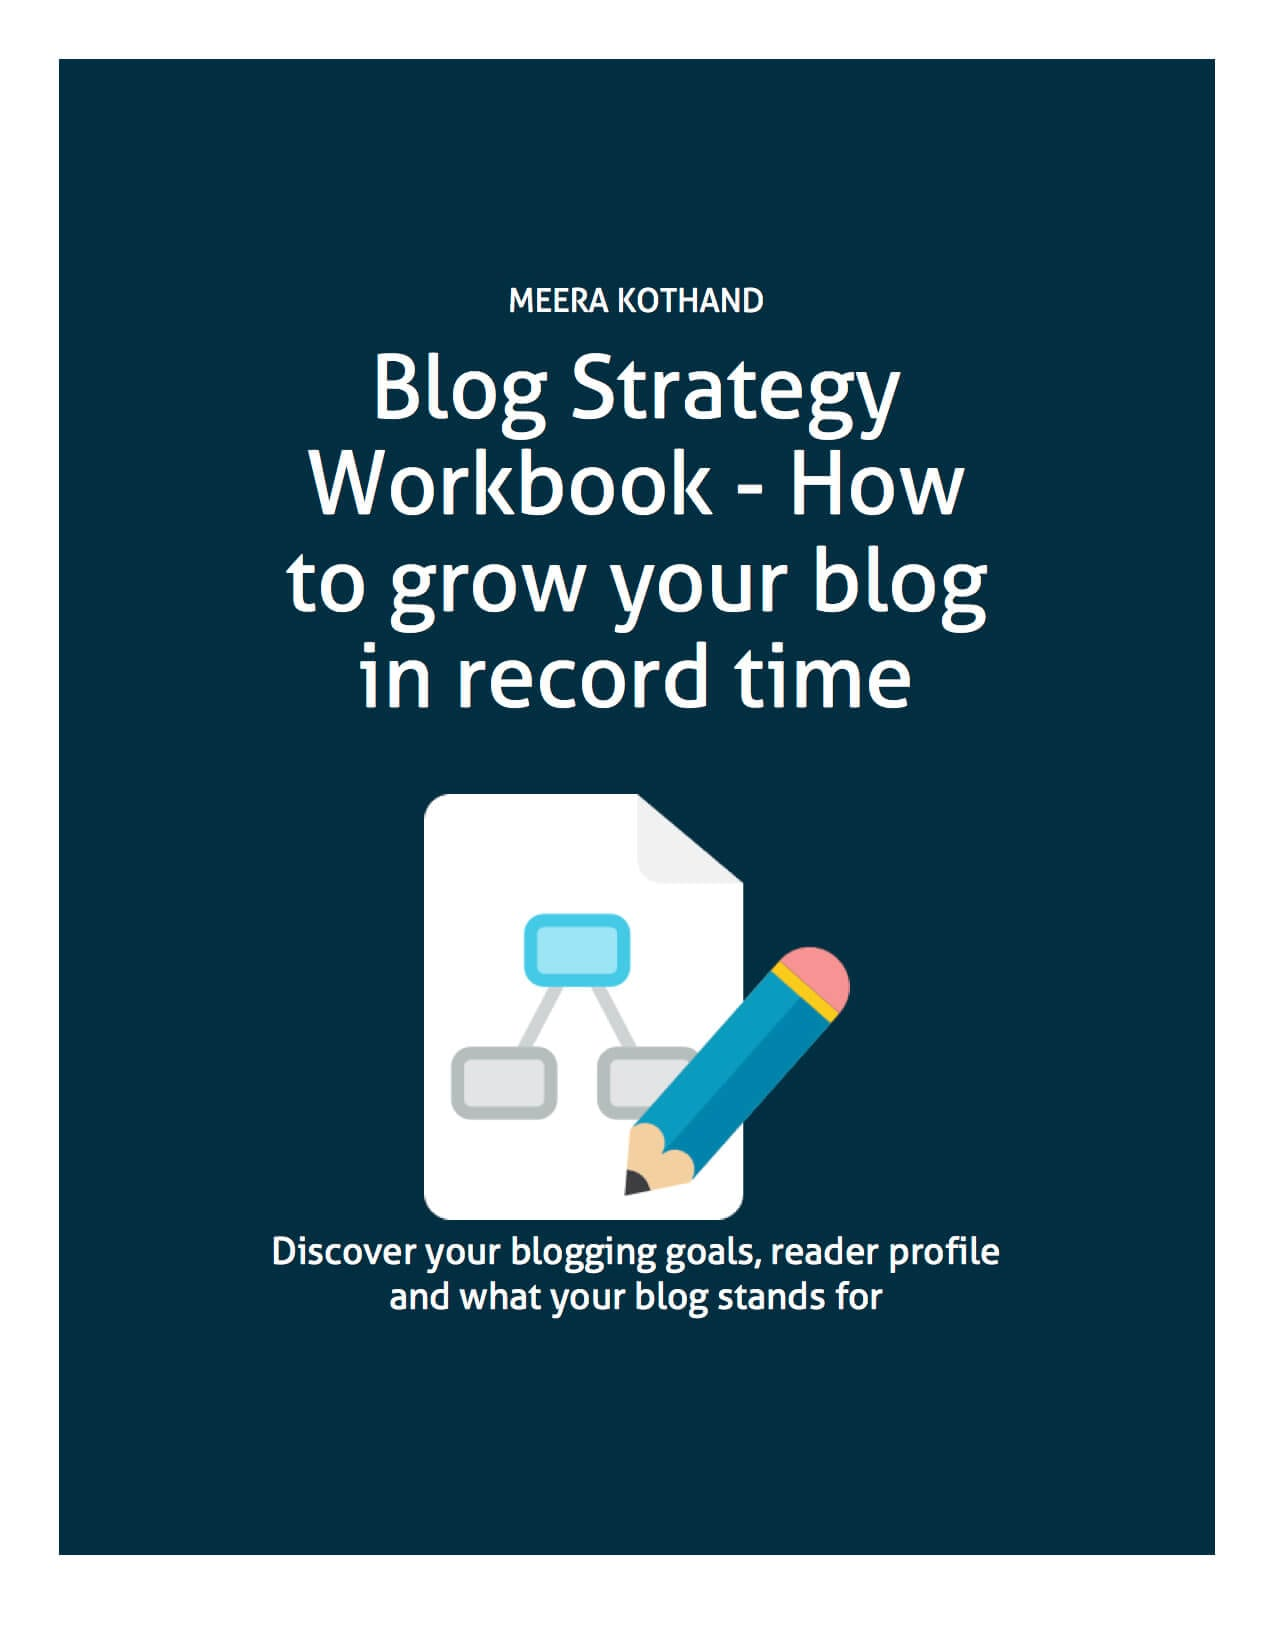 Blog Strategy Workbook - How to grow your blog in record time